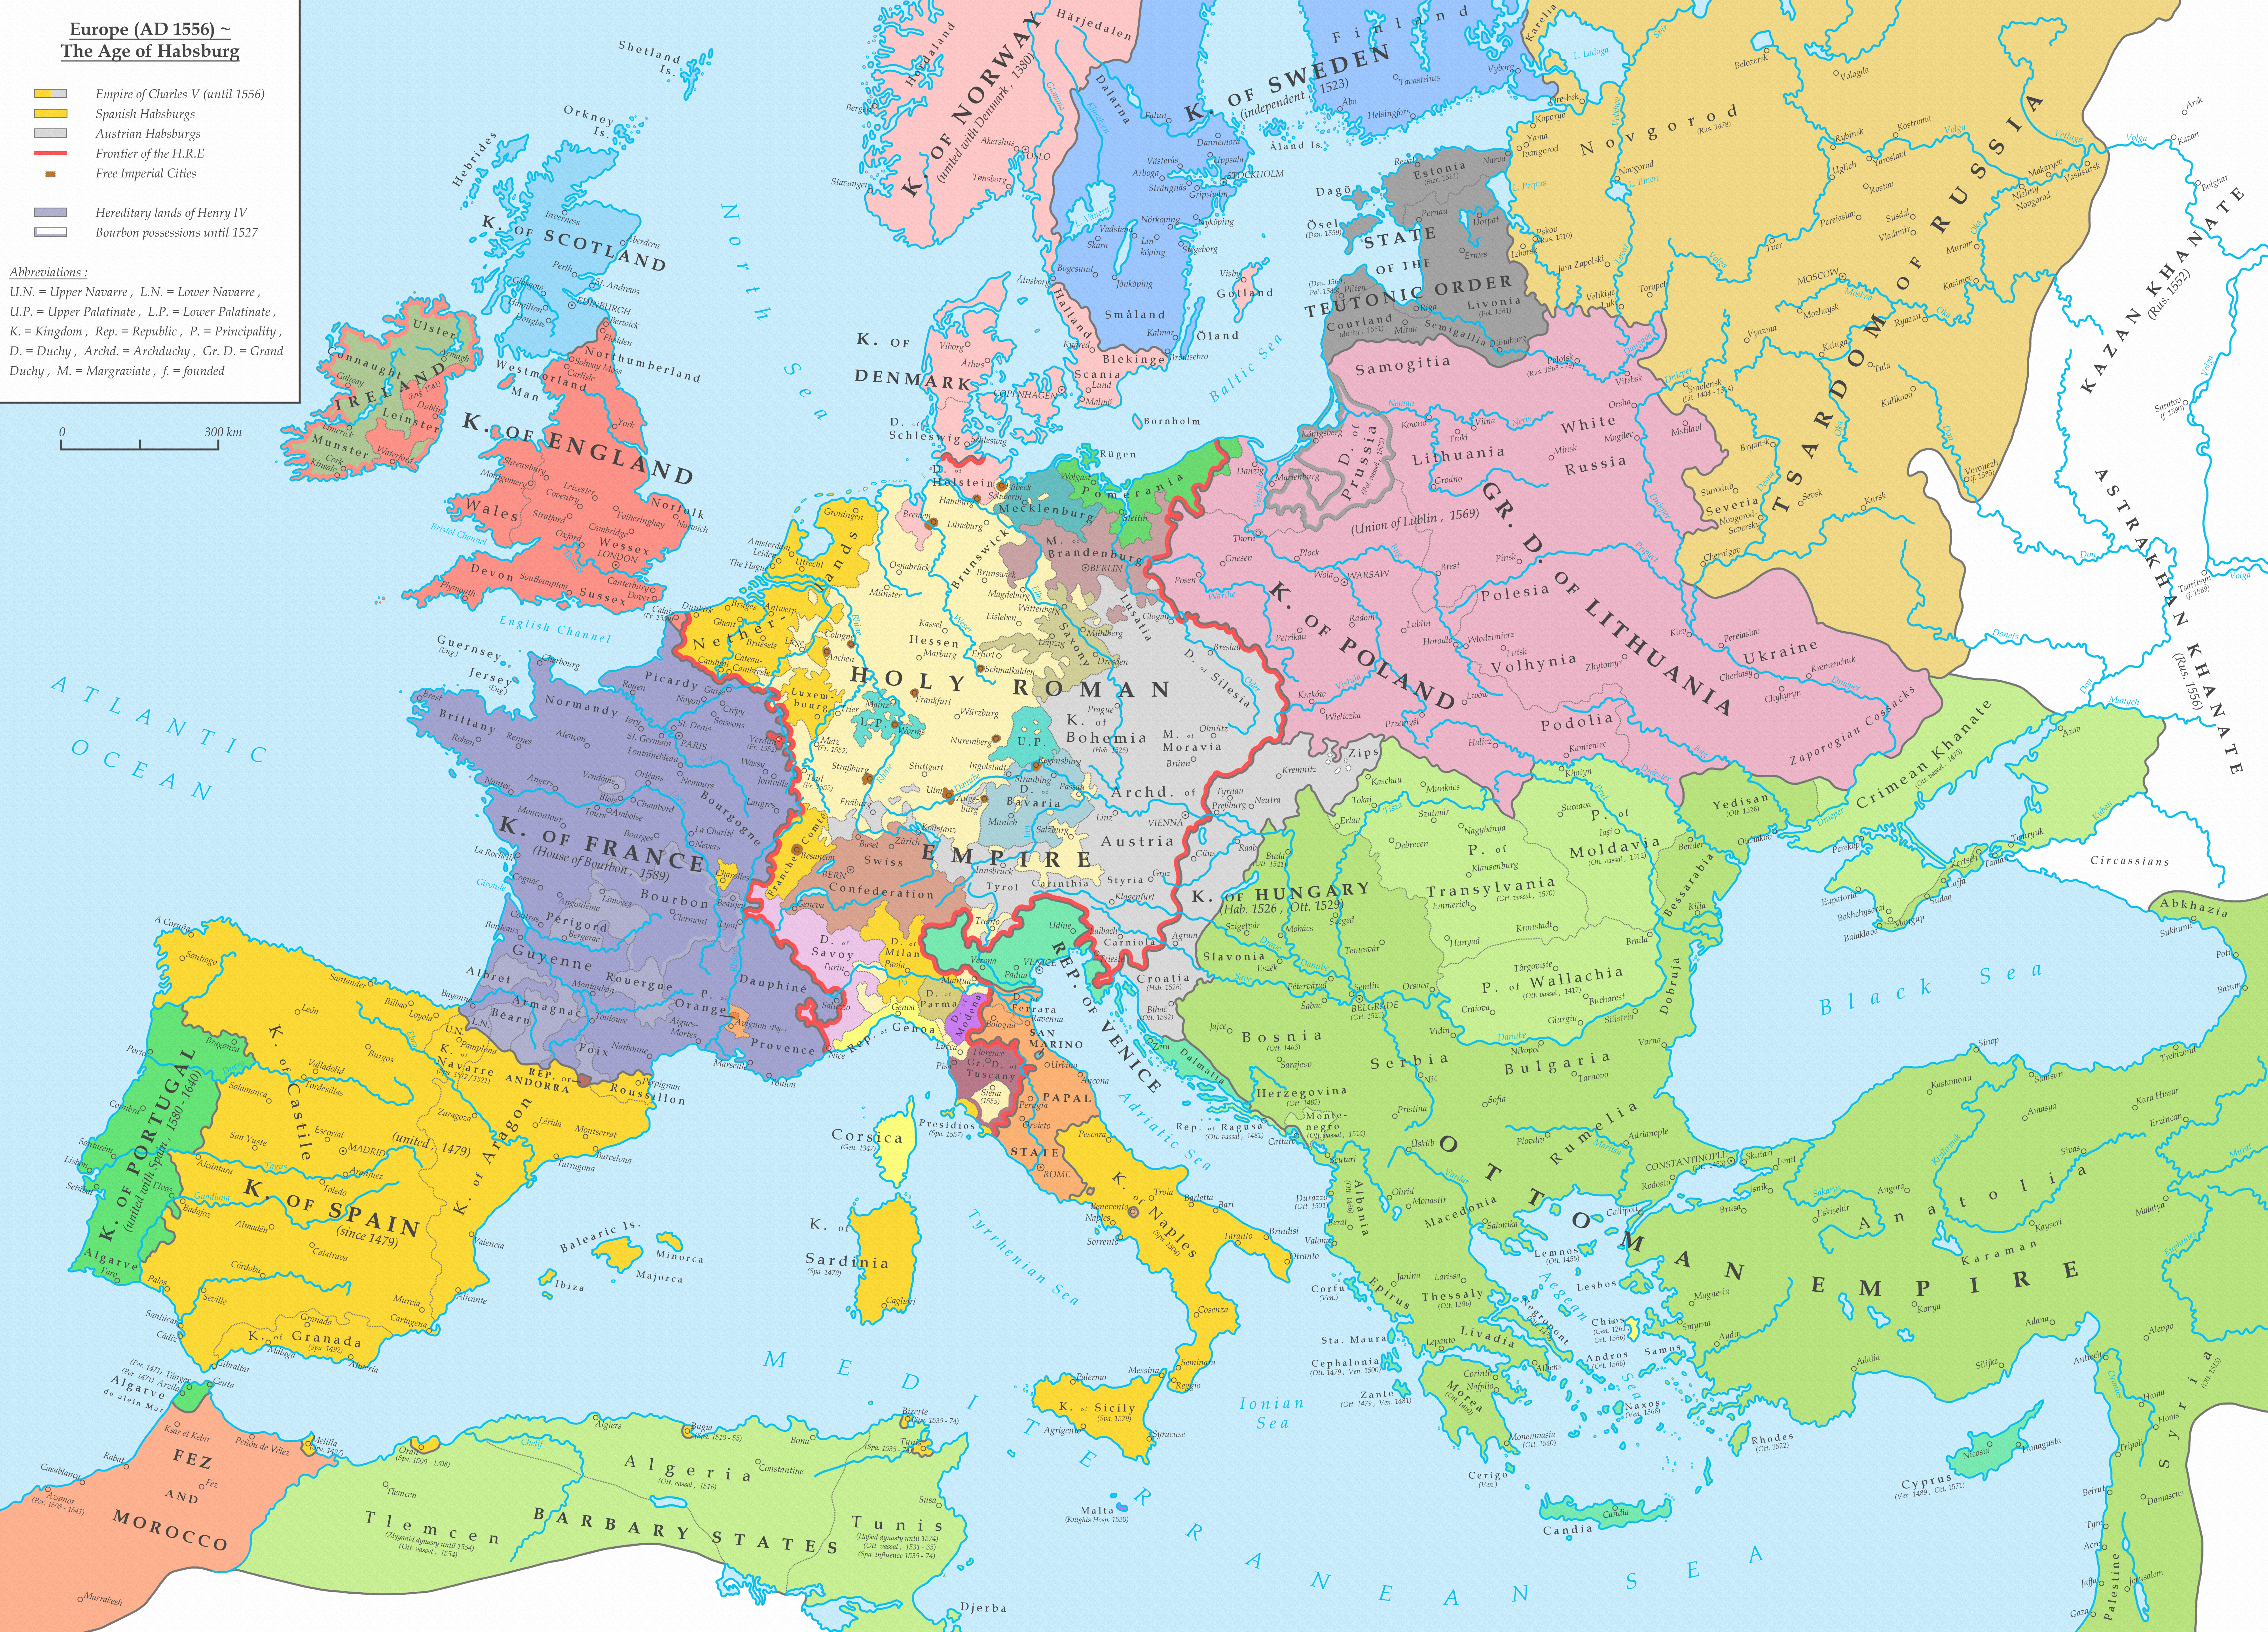 Map Of Europe 1560.Europe Ad 1556 The Age Of Habsburg European Maps Europe Map